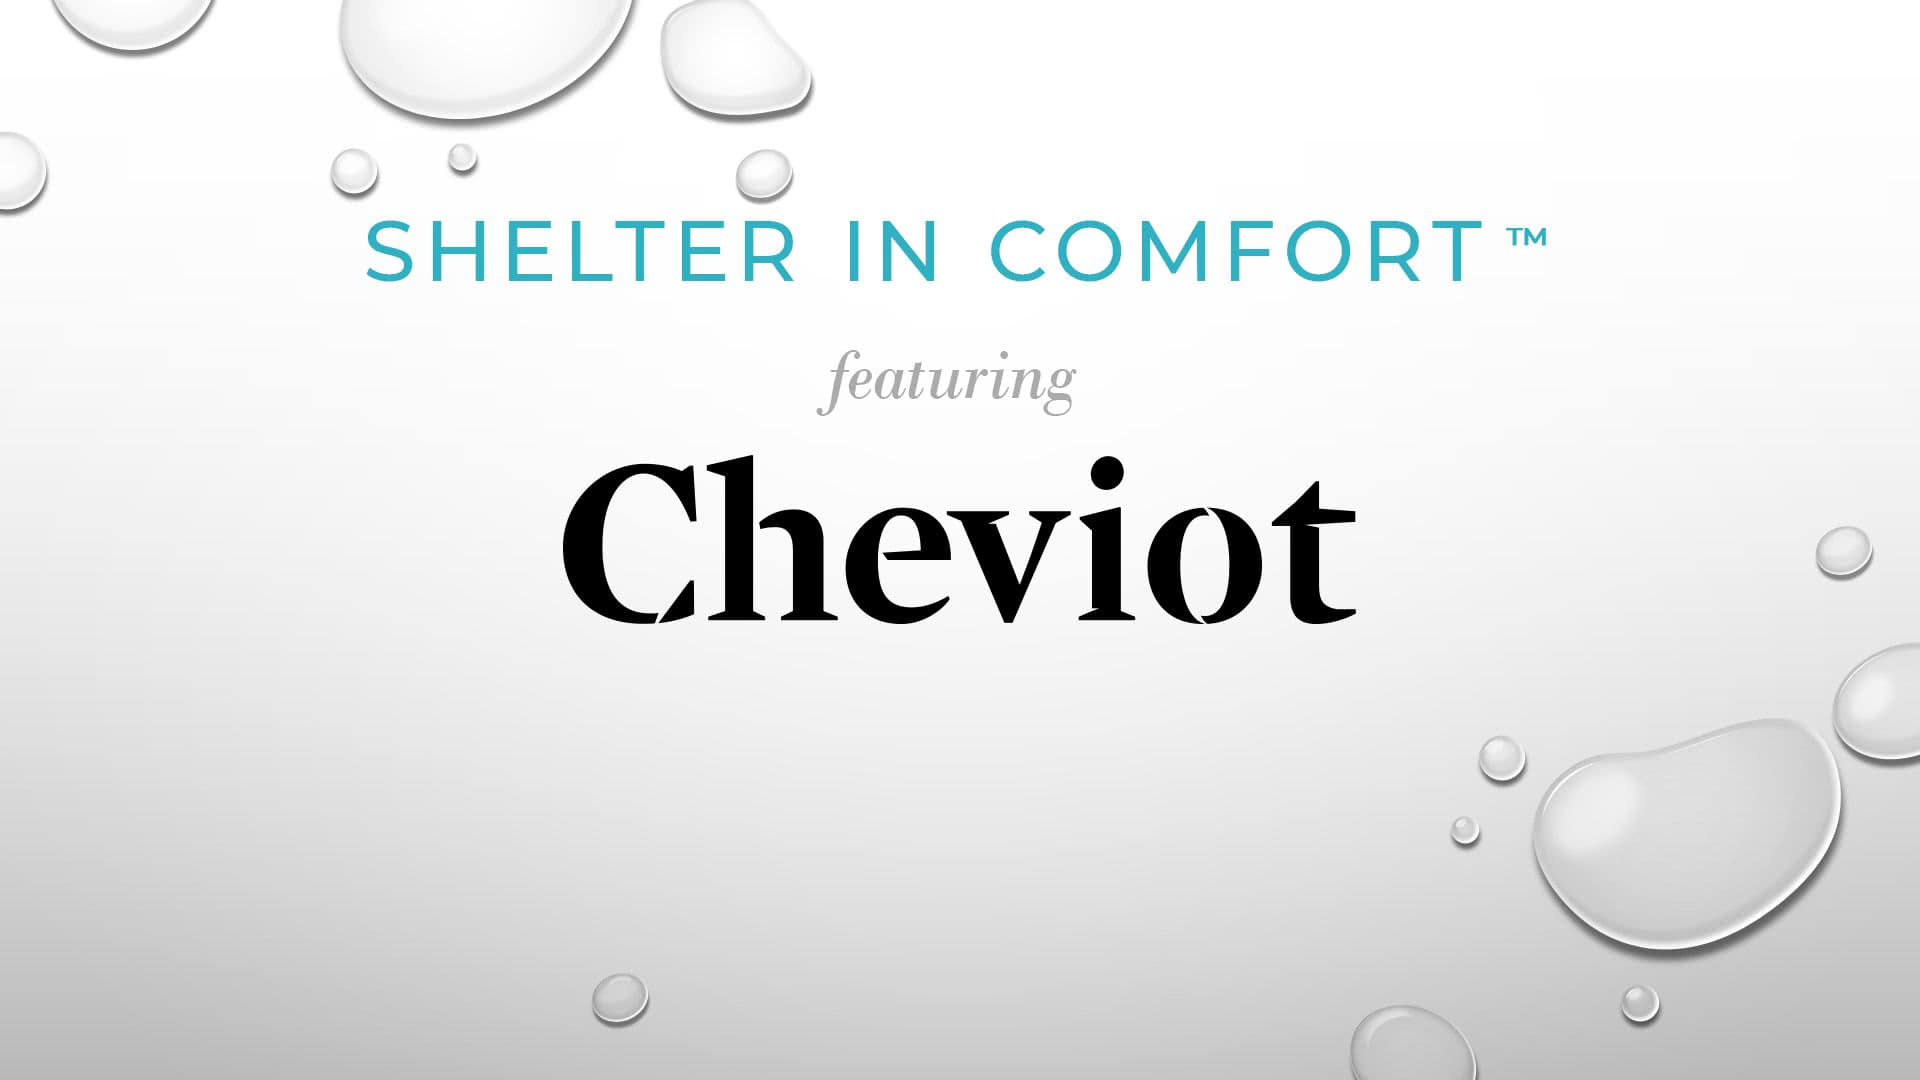 Shelter in Comfort: featuring Cheviot